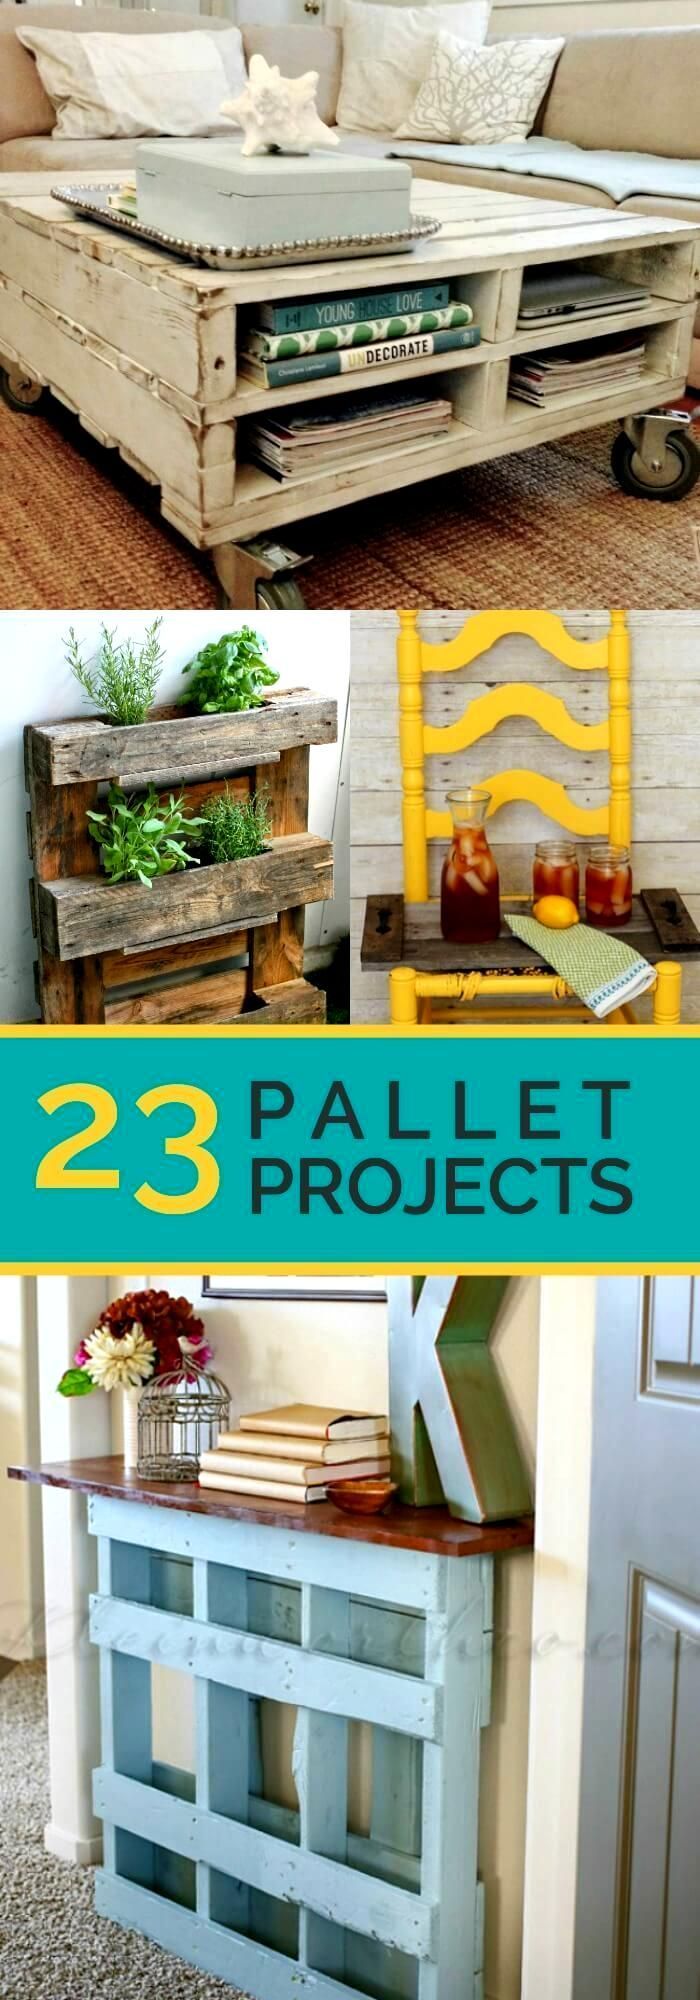 23 Awesome Diy Wood Pallet Ideas A Creative Side Of Me I Didn T Even Know Existed A Few Weeks Ago Pallet Decor Wooden Pallet Projects Wood Pallet Projects